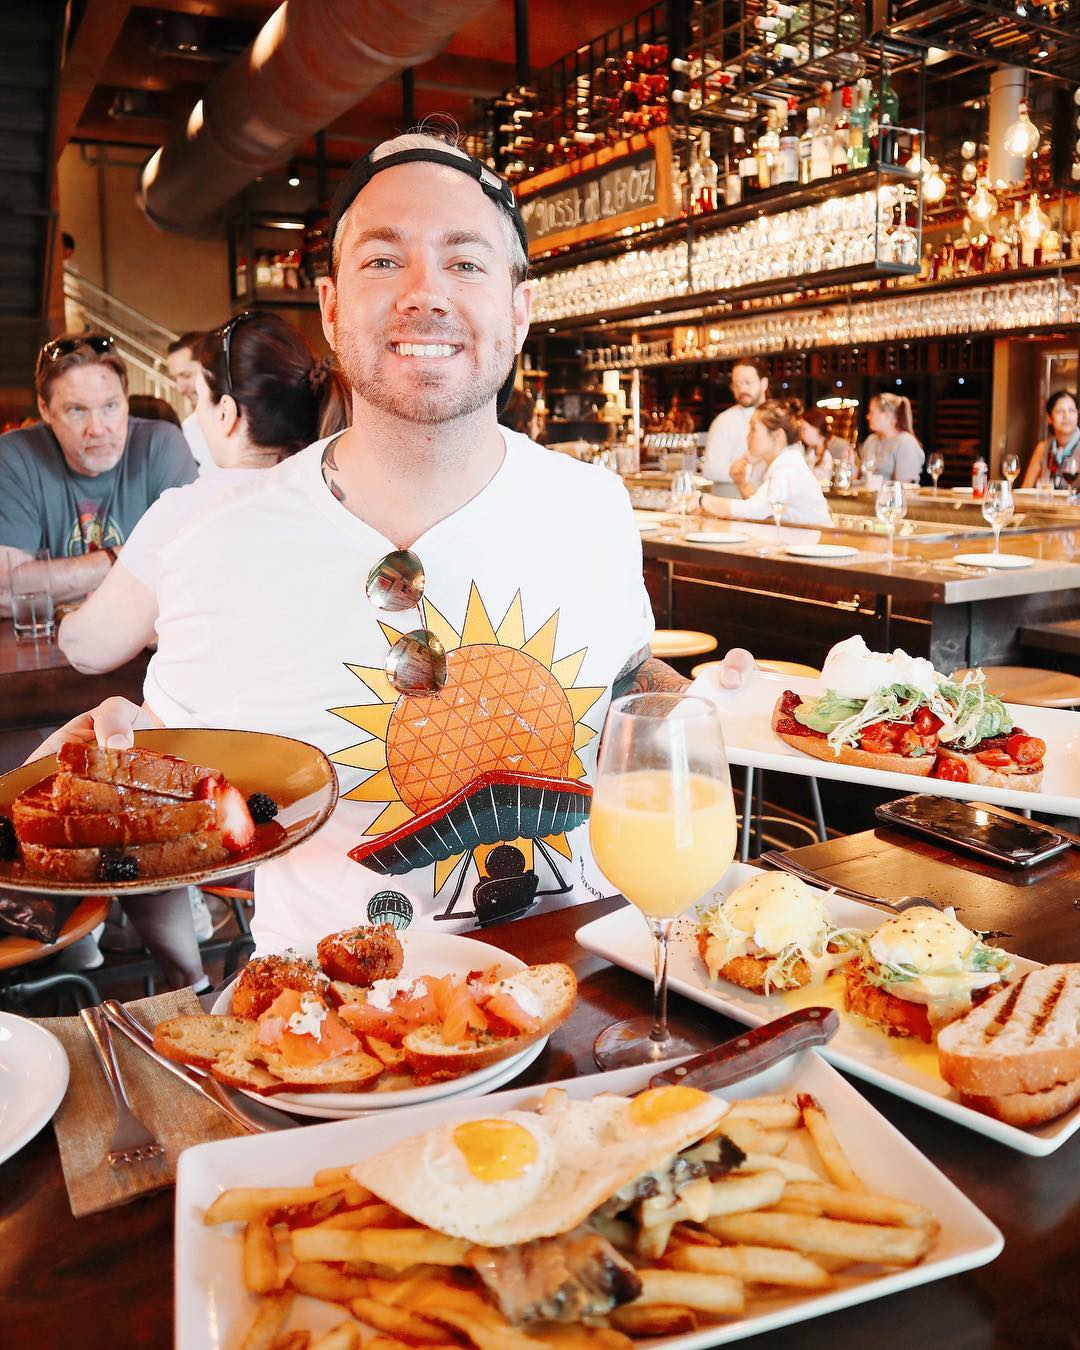 Brunch at Wine Bar George in Disney Springs